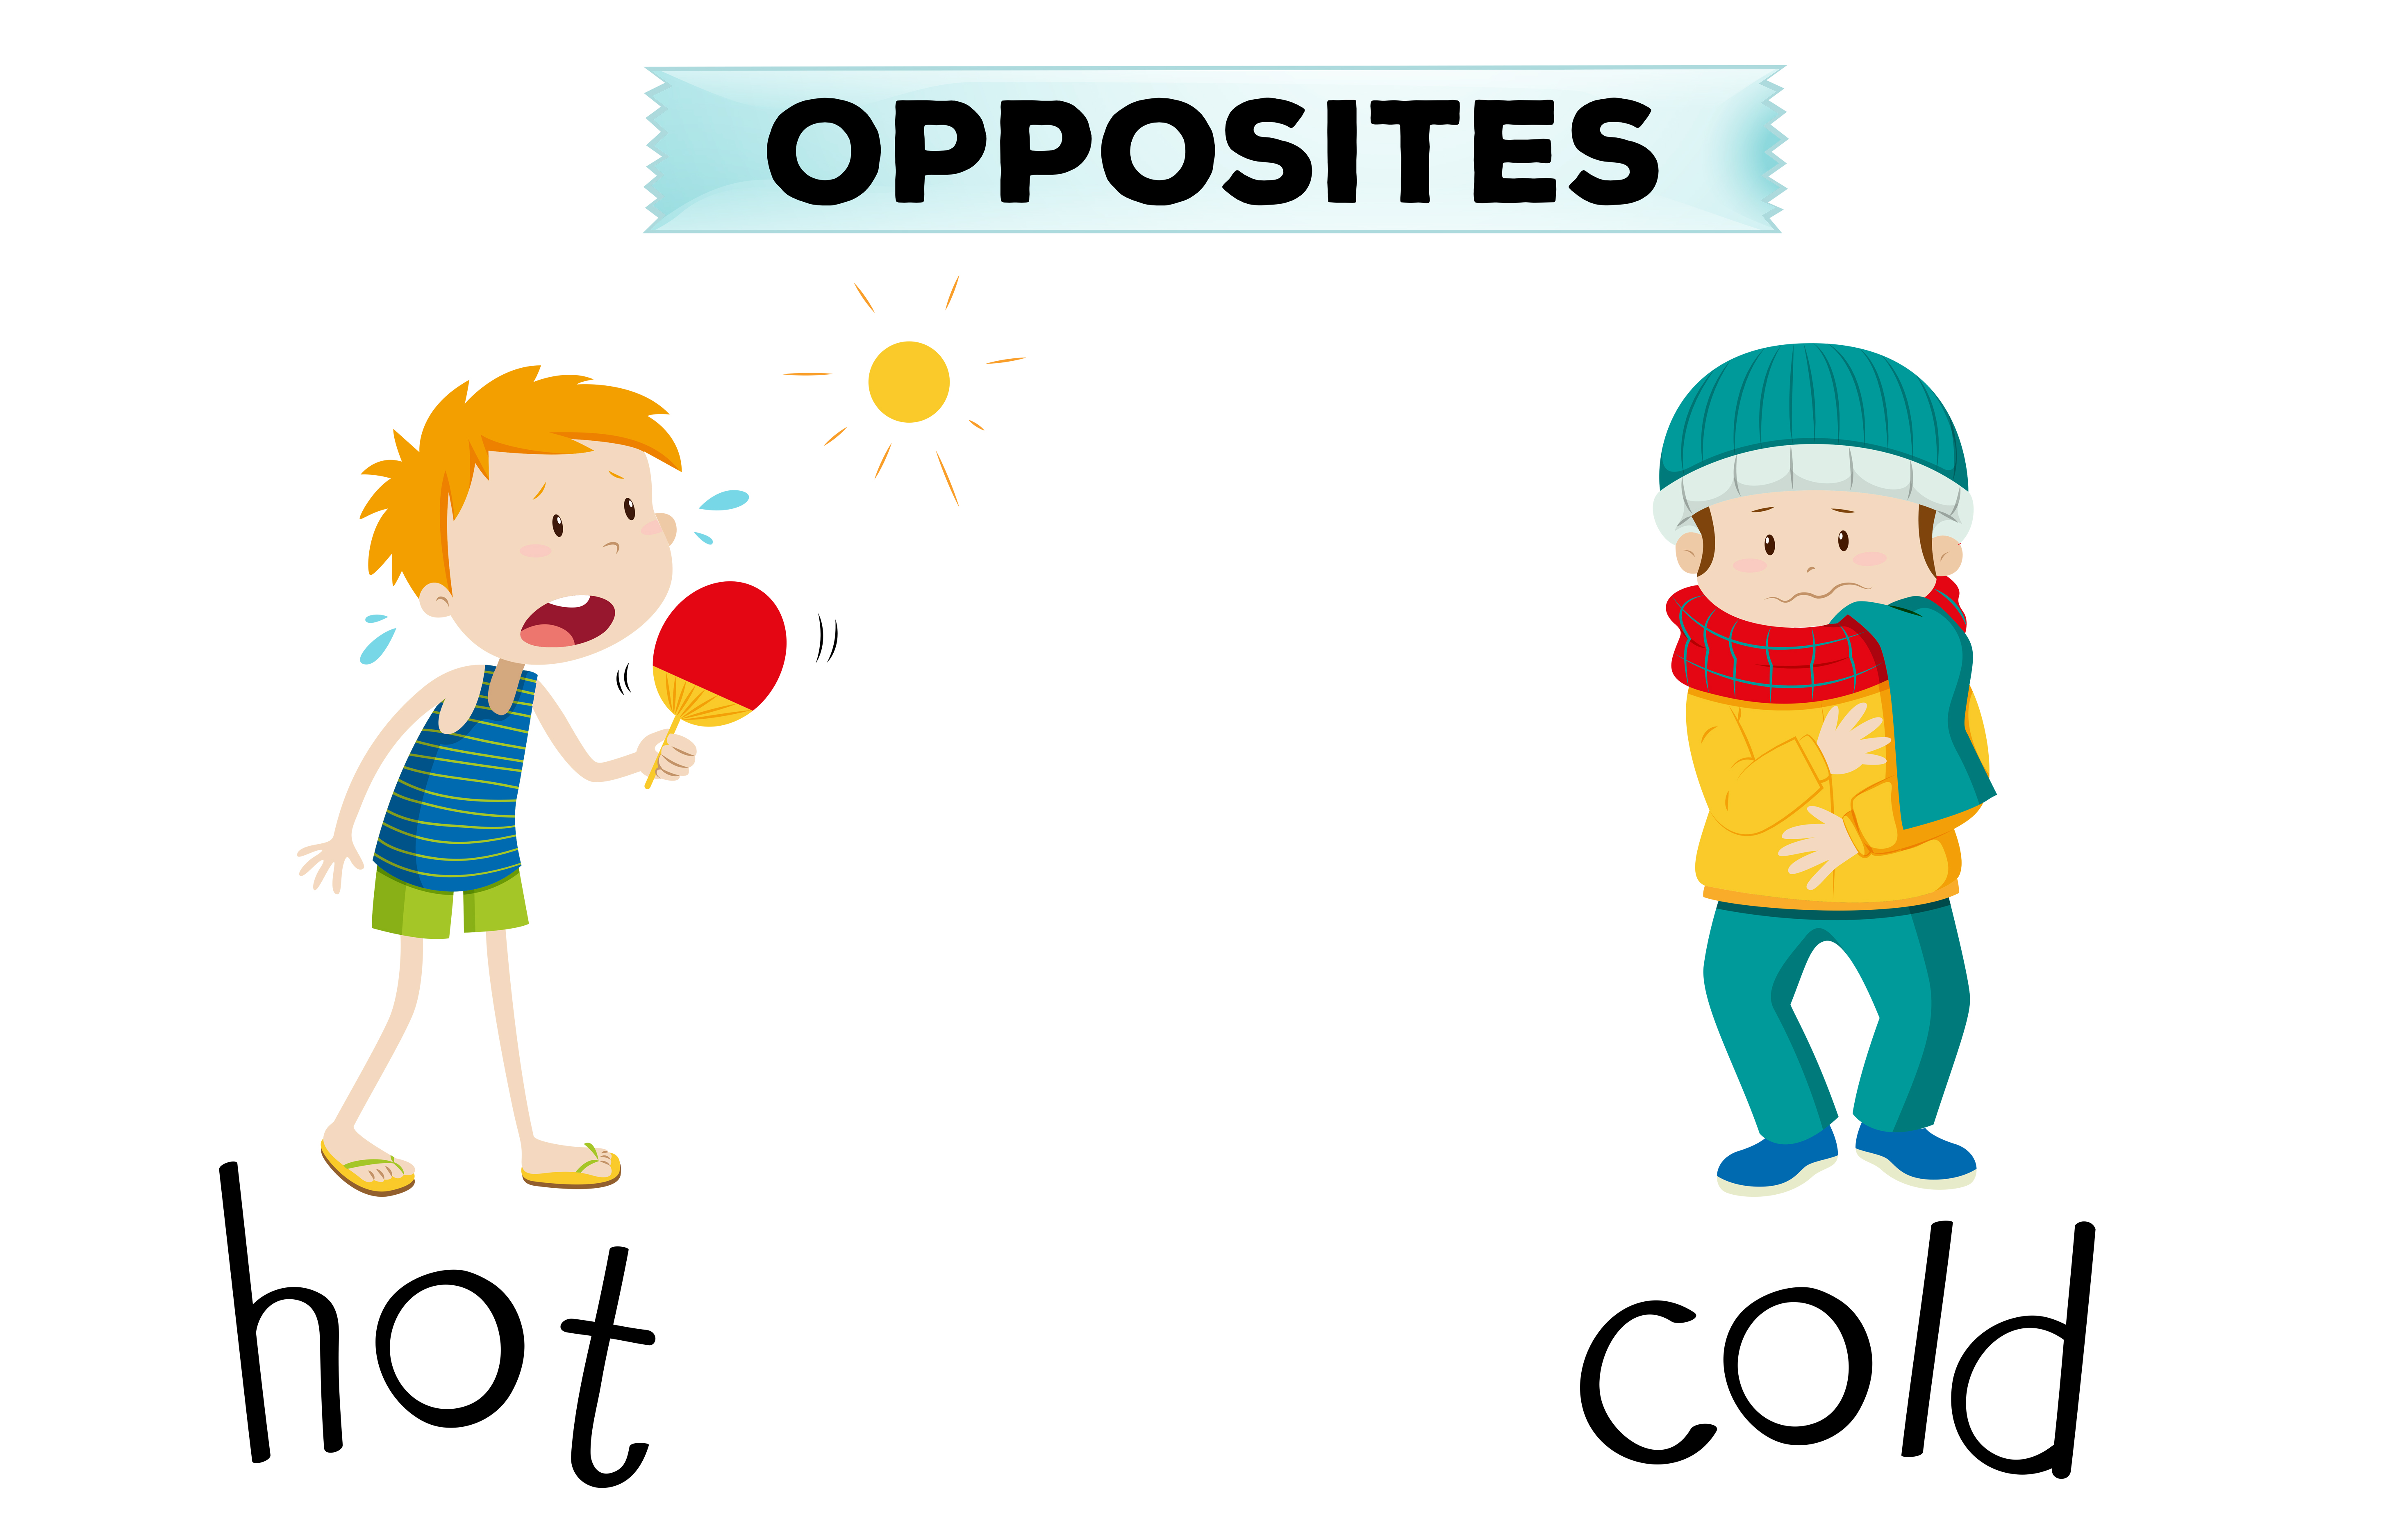 Opposite words for hot and cold - Download Free Vectors ...